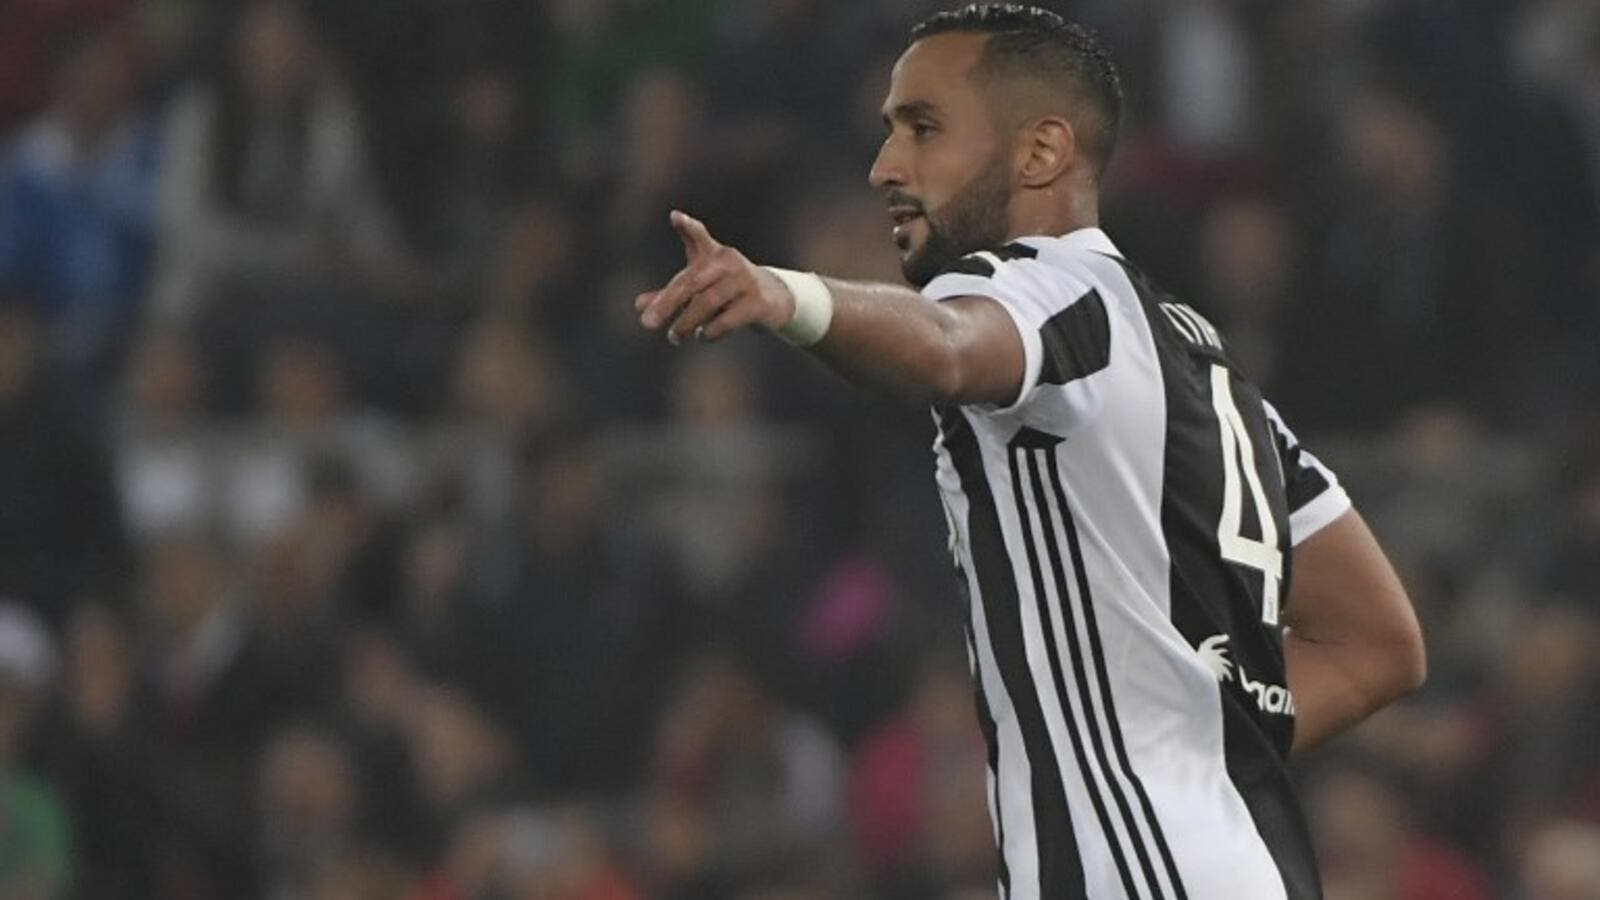 A Uruguayan defender is nearing his return for a third spell in Turin, while the Bianconeri boss has confirmed that a Moroccan star is heading out